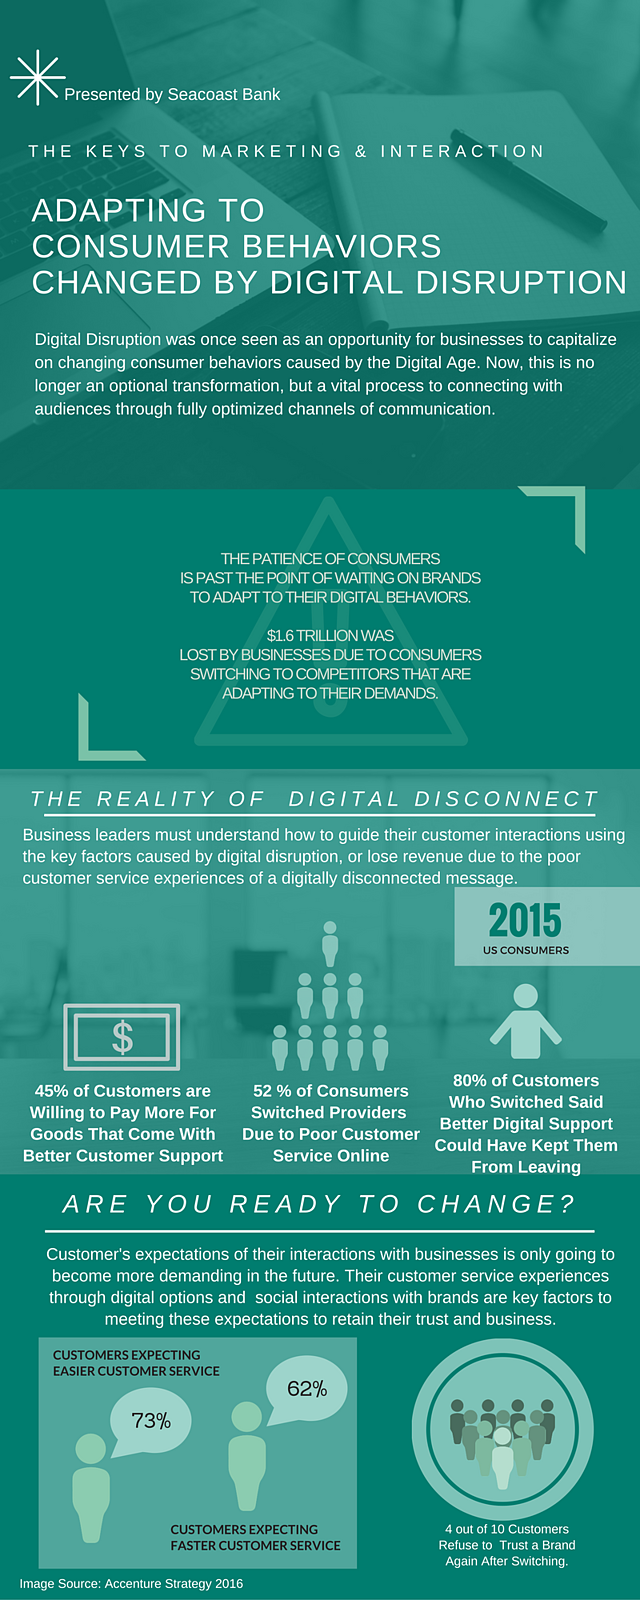 digital-disruption-better-interaction-customer-service.jpg